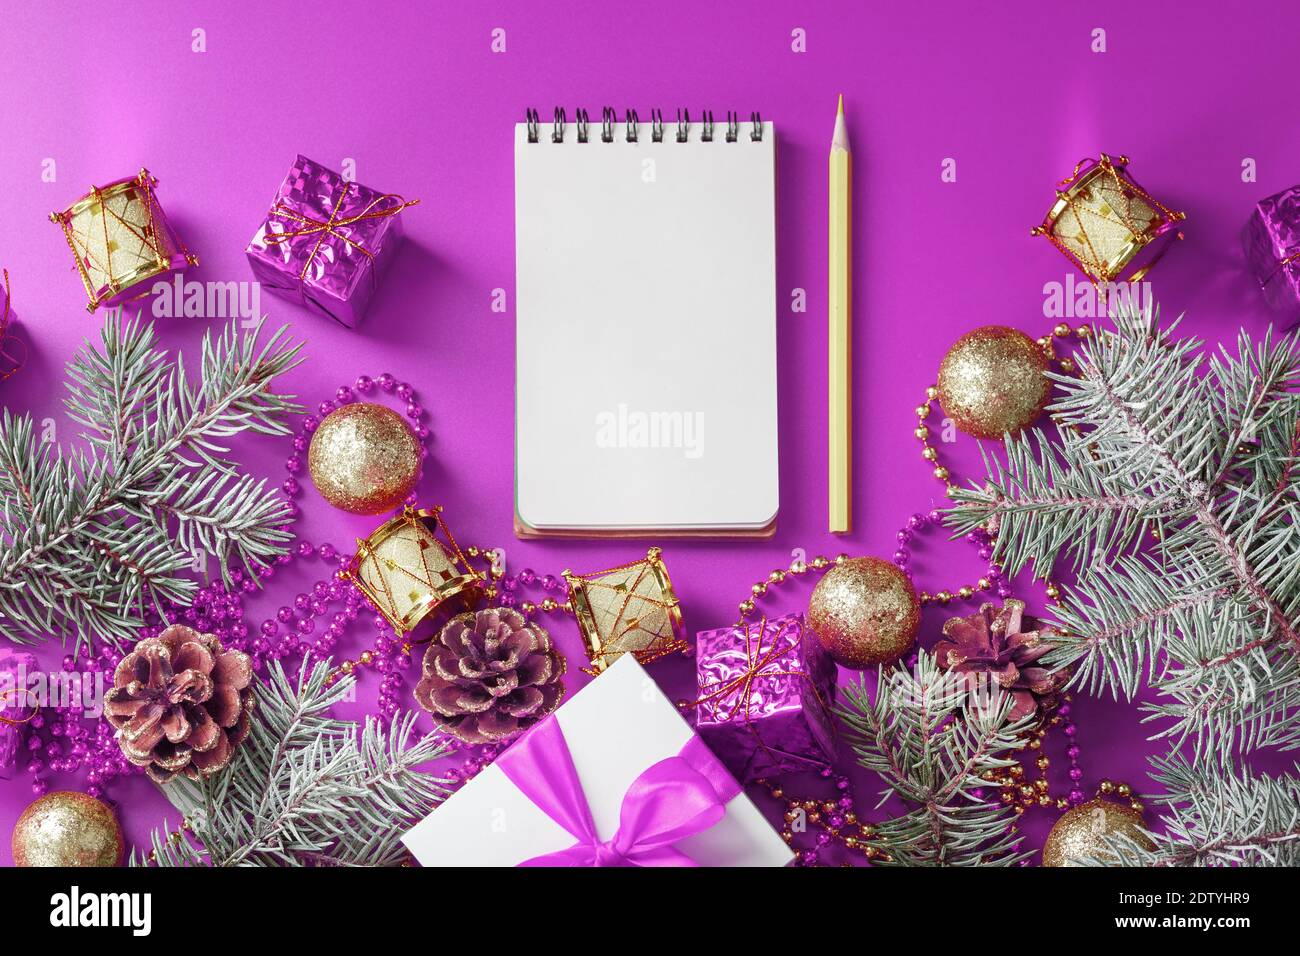 Closed For Christmas 2021 Purple Ornements Pics Clean White Notepad With Pencil Around Christmas Decorations On Purple Background Planning Wish List And Resolution 2021 The View From The Top Stock Photo Alamy